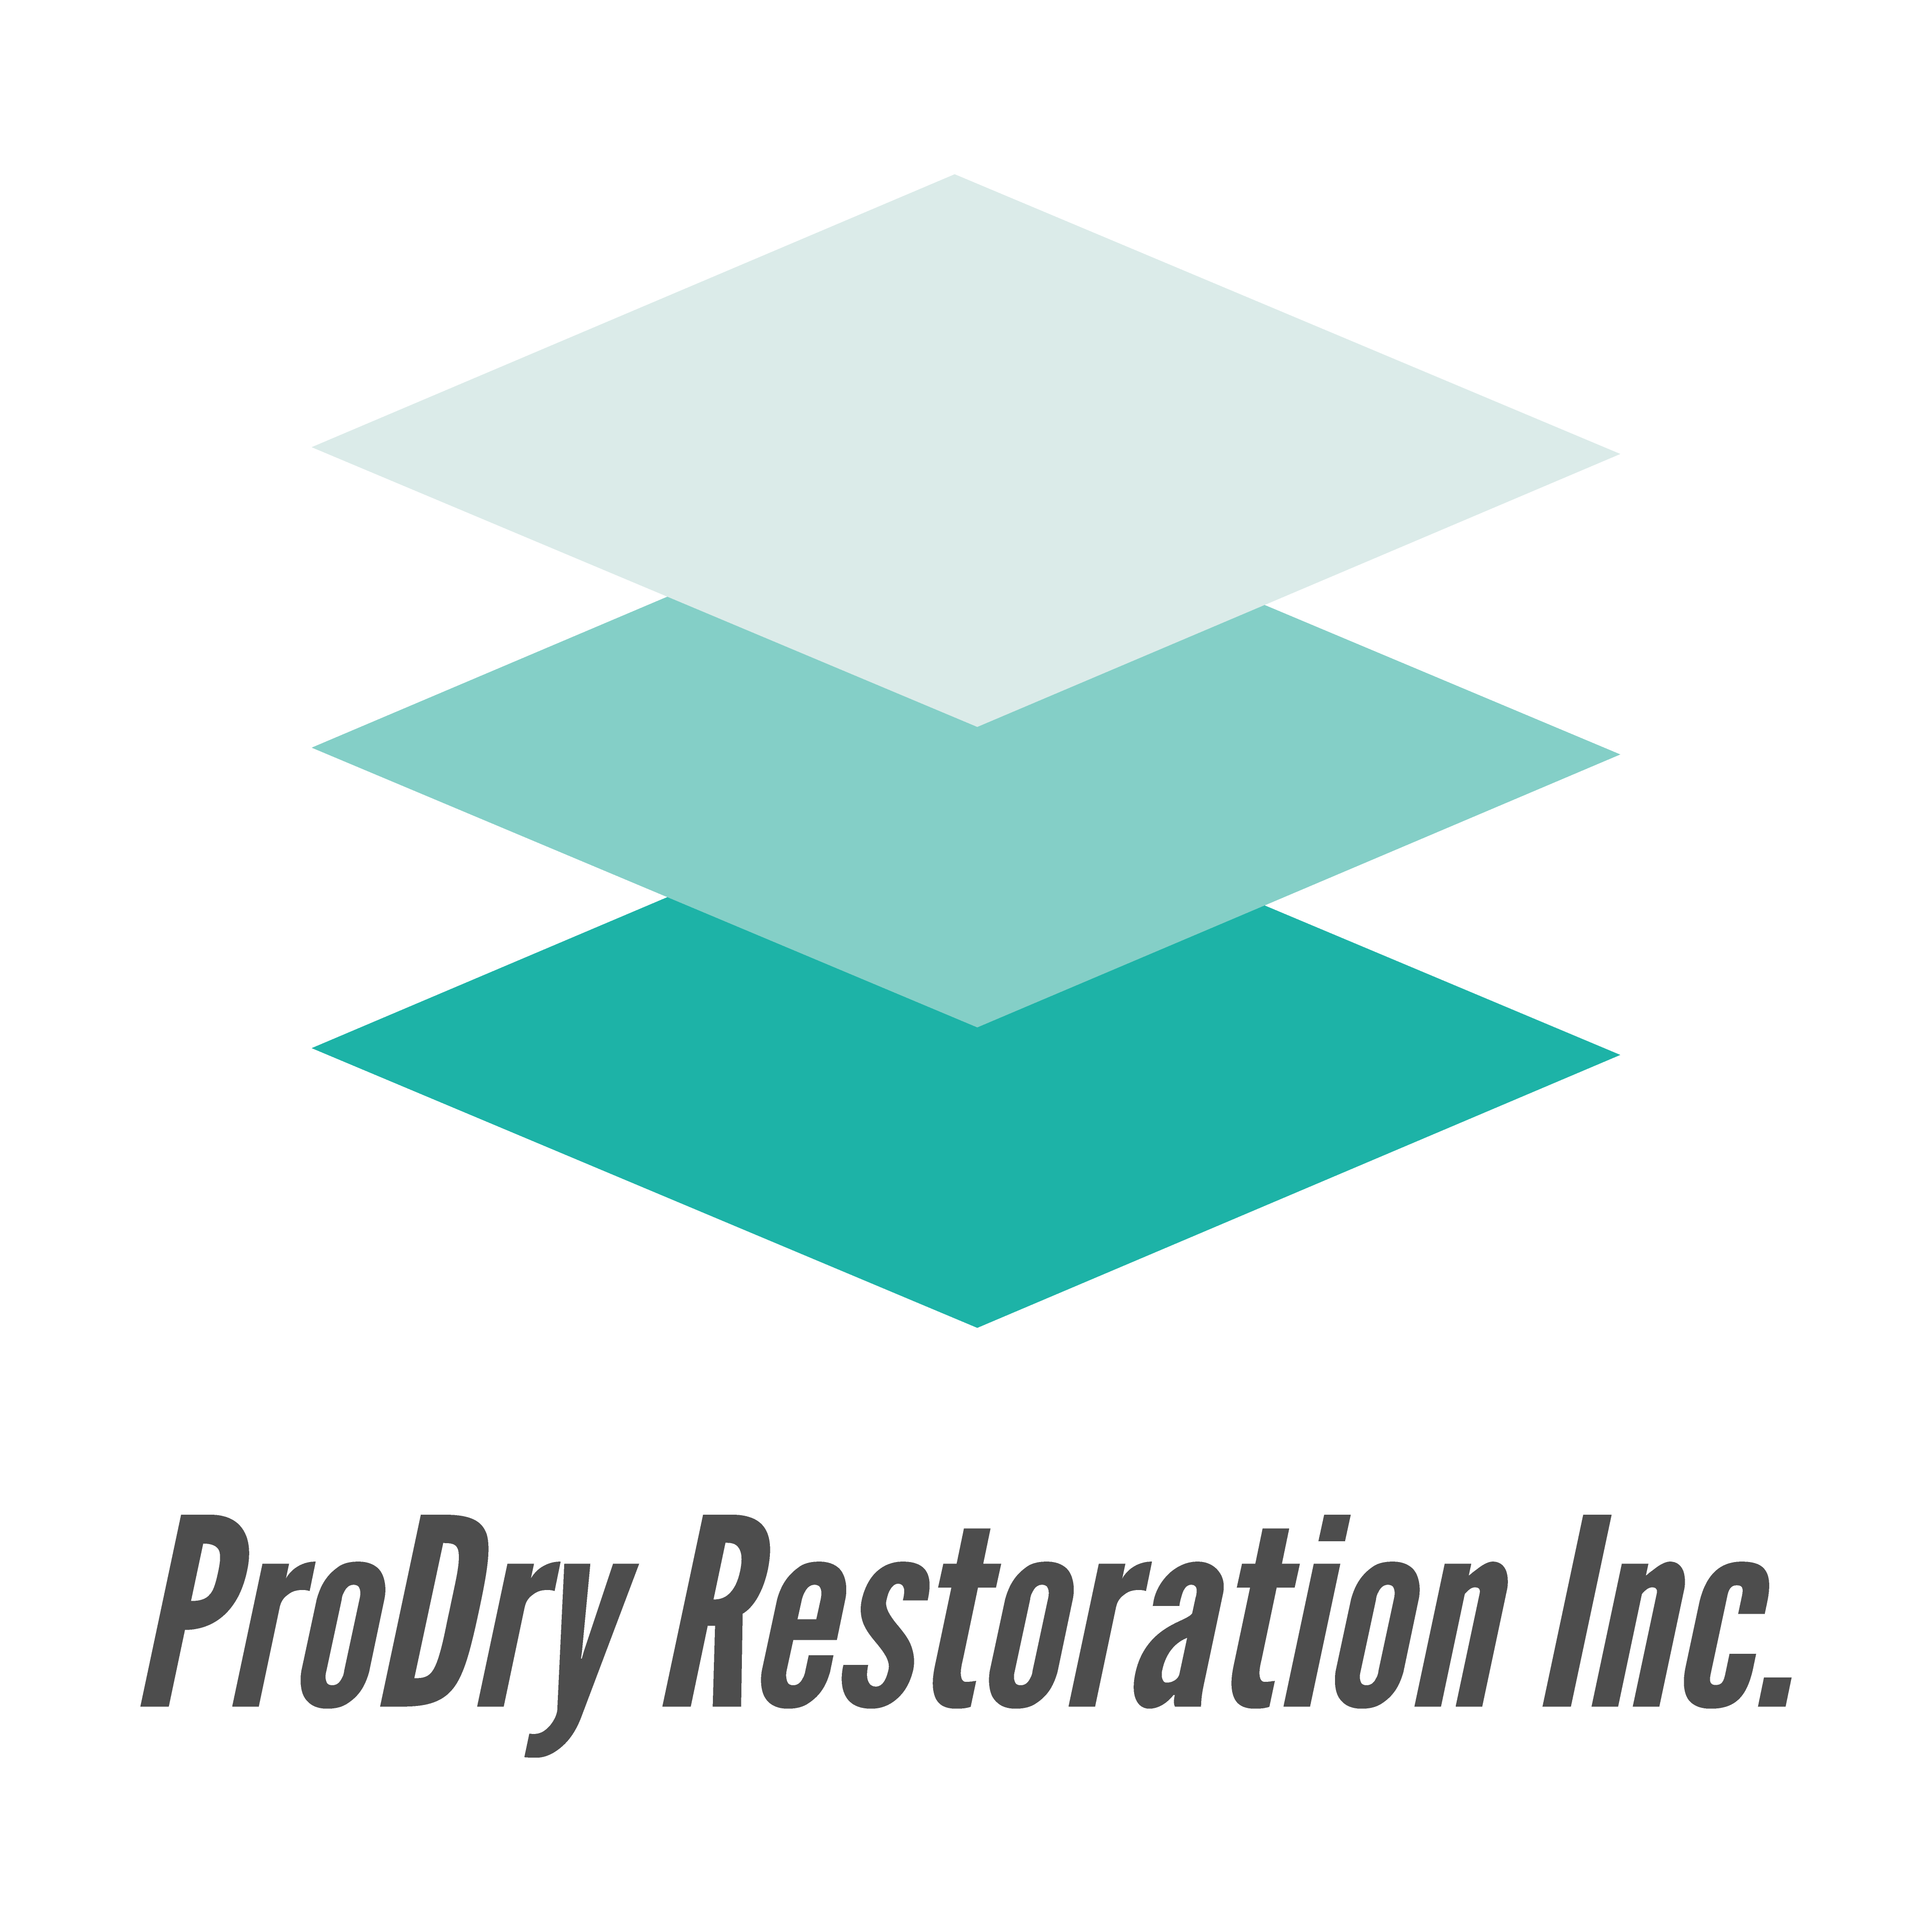 ProDry Restoration Inc logo